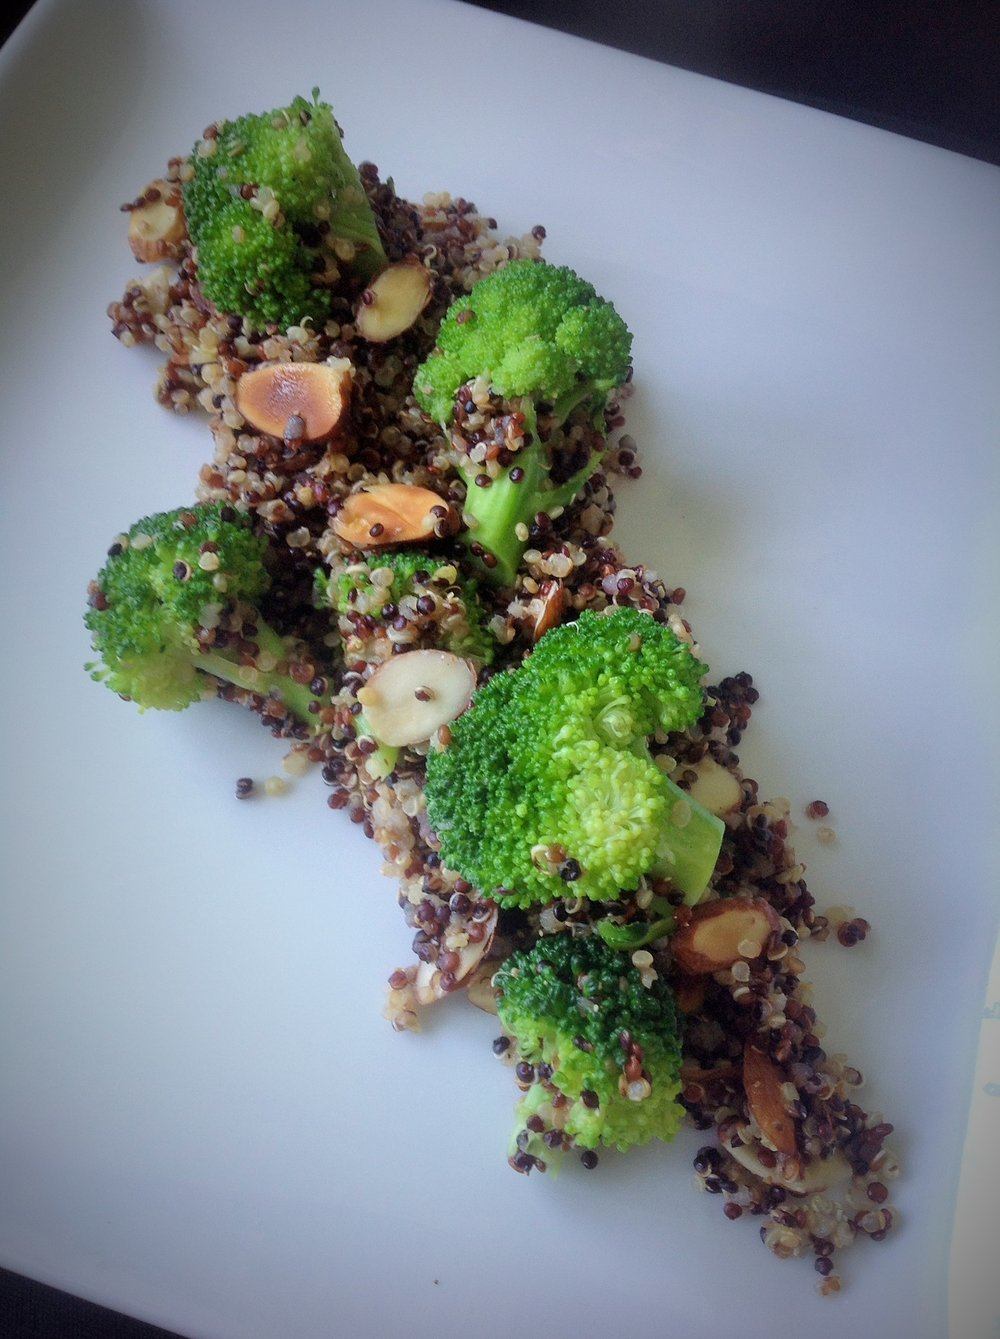 Lemon Broccoli Tri-Color Quinoa - Healthy, Gluten-Free, Oil-Free, Plant-Based, Vegan Salad Recipe with Almonds